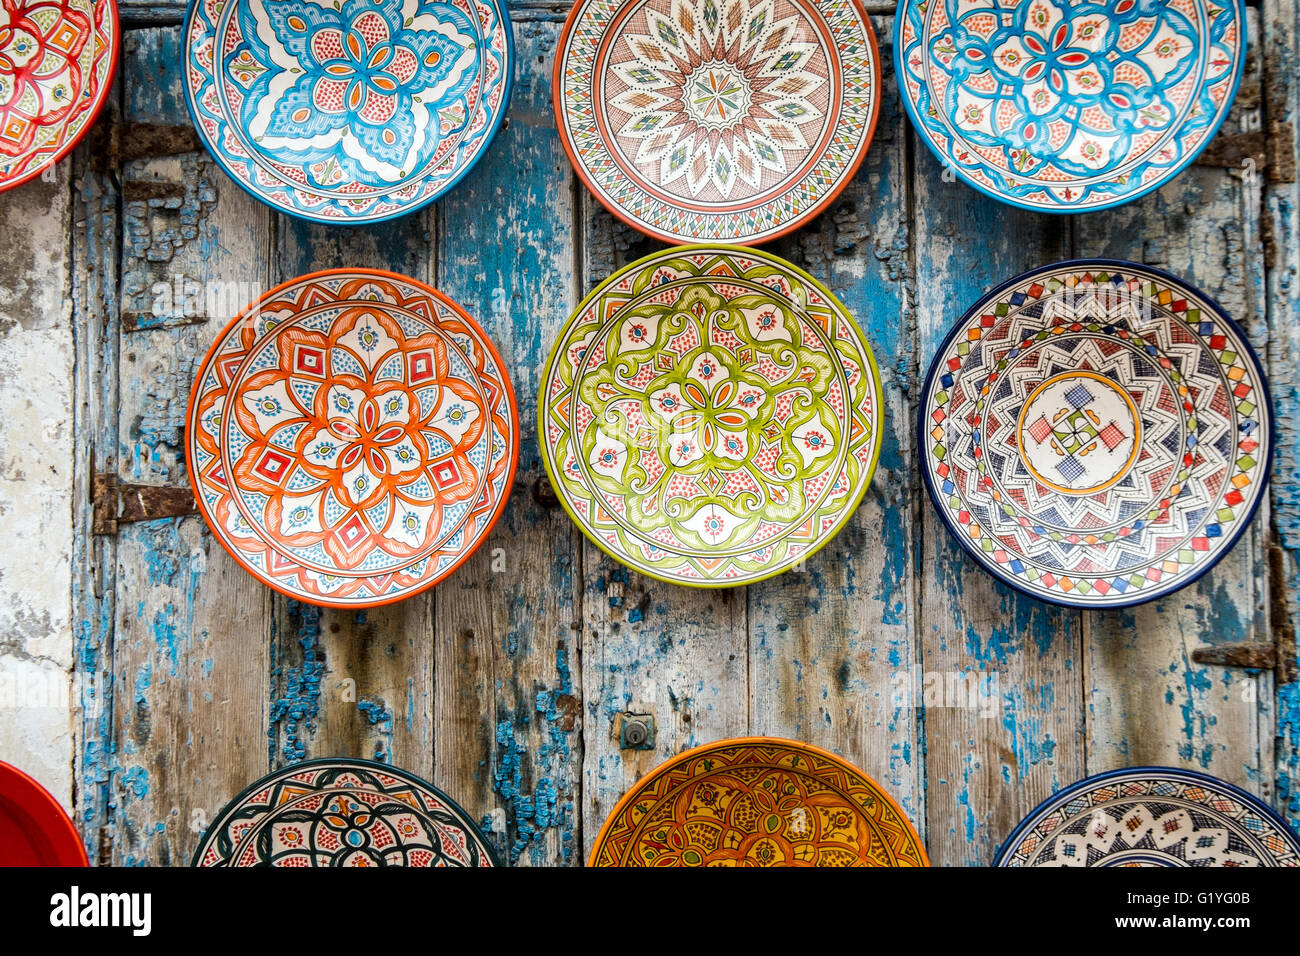 Blue Decorative Wall Plates Stunning Decorative Wall Plates Stock Photos & Decorative Wall Plates Stock Decorating Inspiration